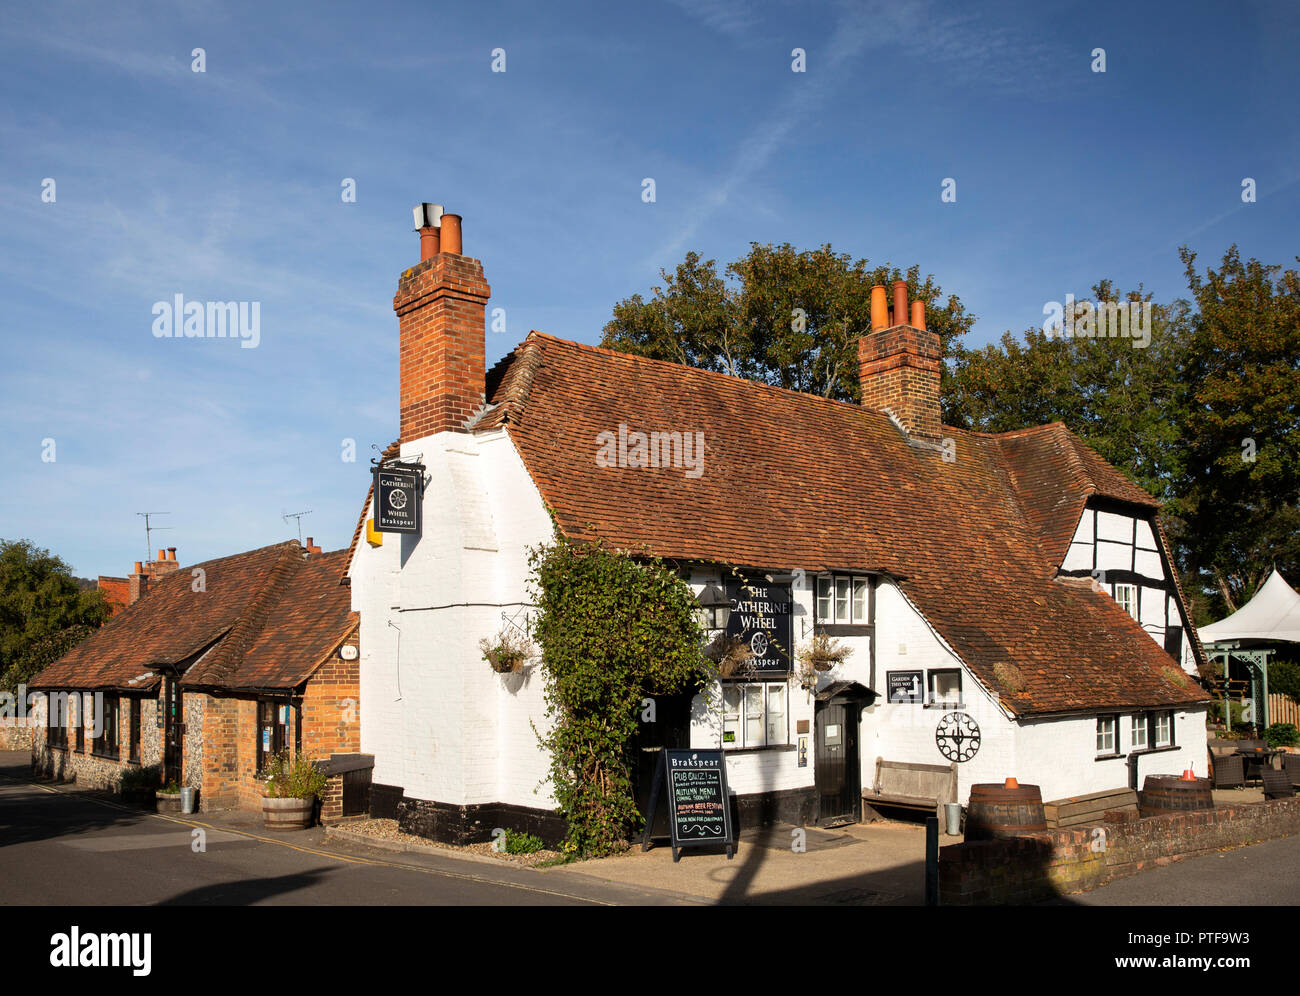 England, Berkshire, Goring on Thames, Station Road, Catherine Wheel pub with Forge bar in former smithy - Stock Image